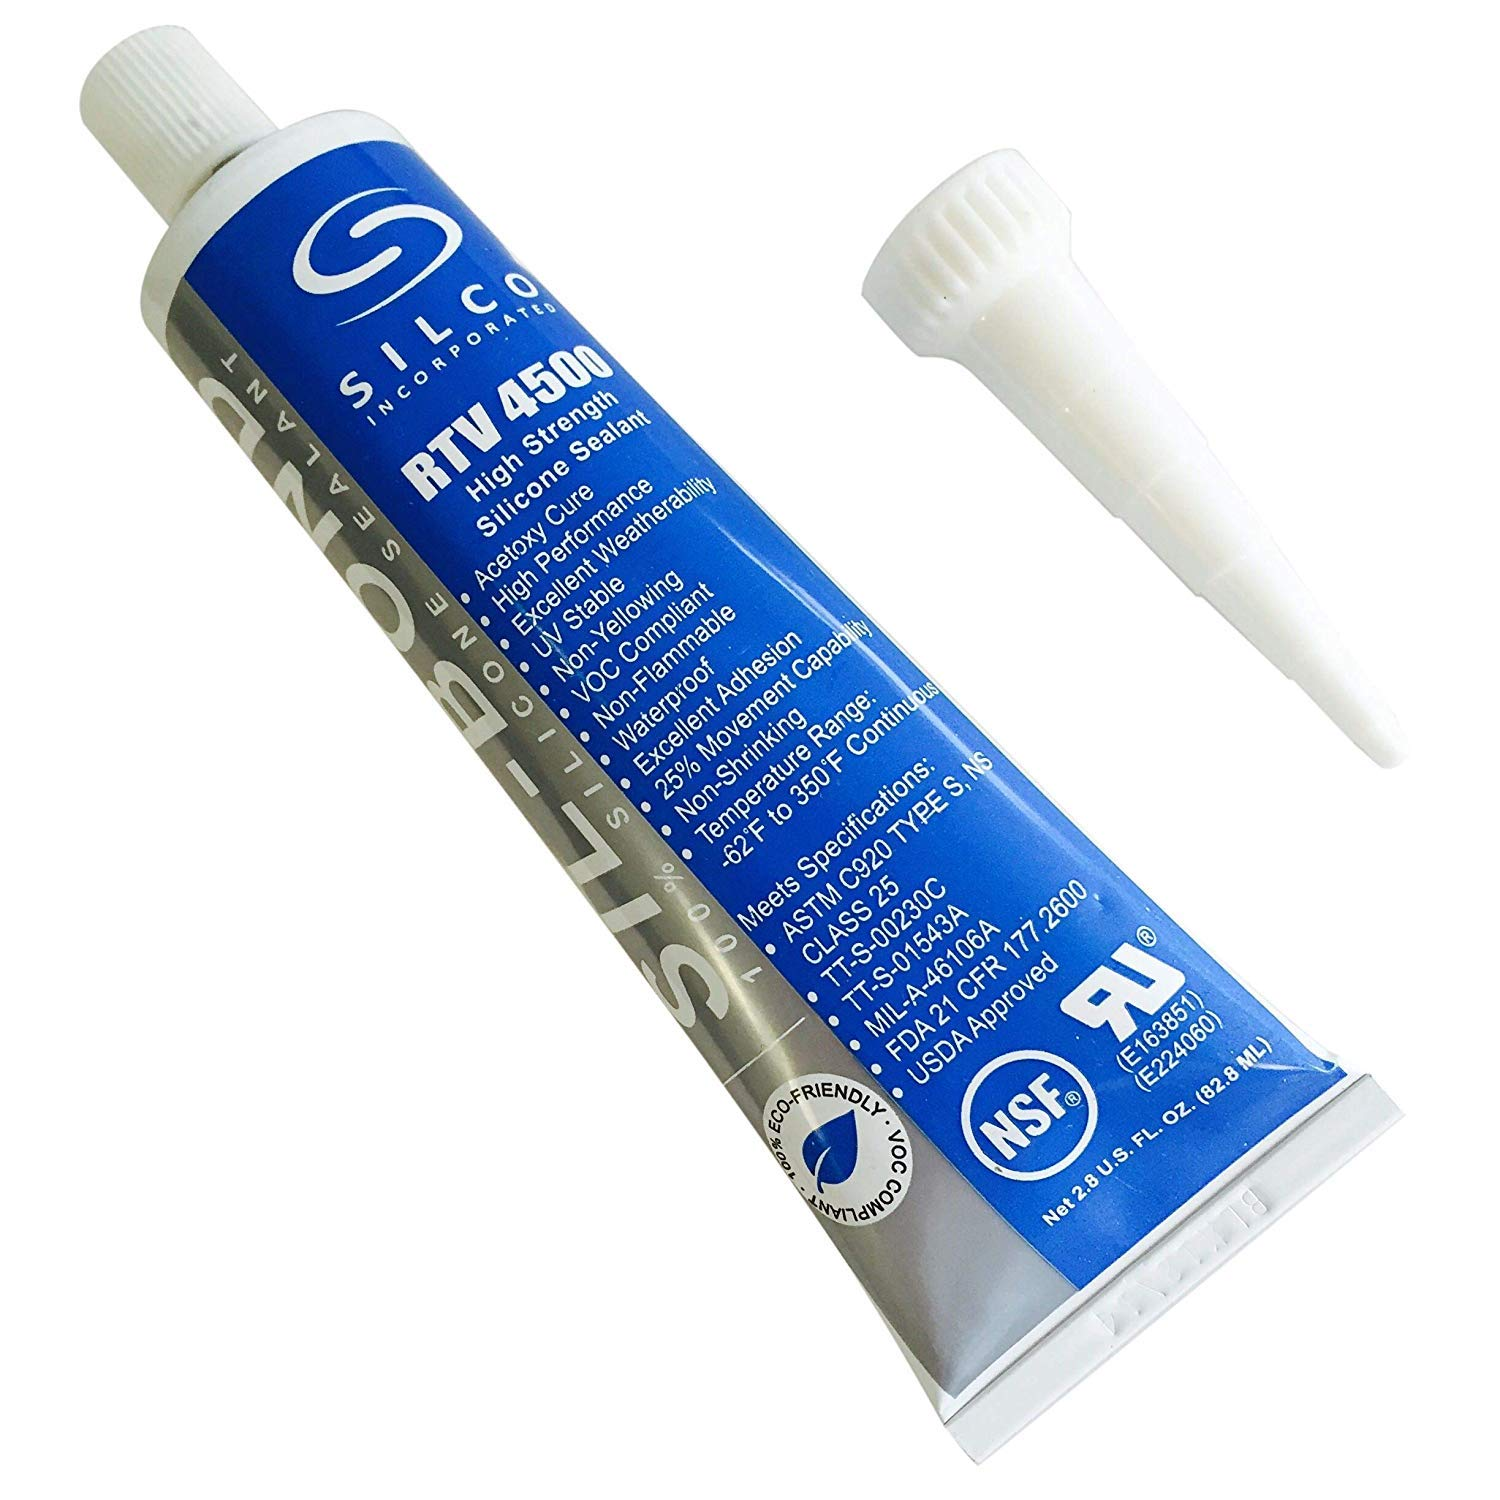 Silicone RTV 4500 Food Contact Safe High Strength Silicone Sealant, Clear (2.8 FL. Ounce)